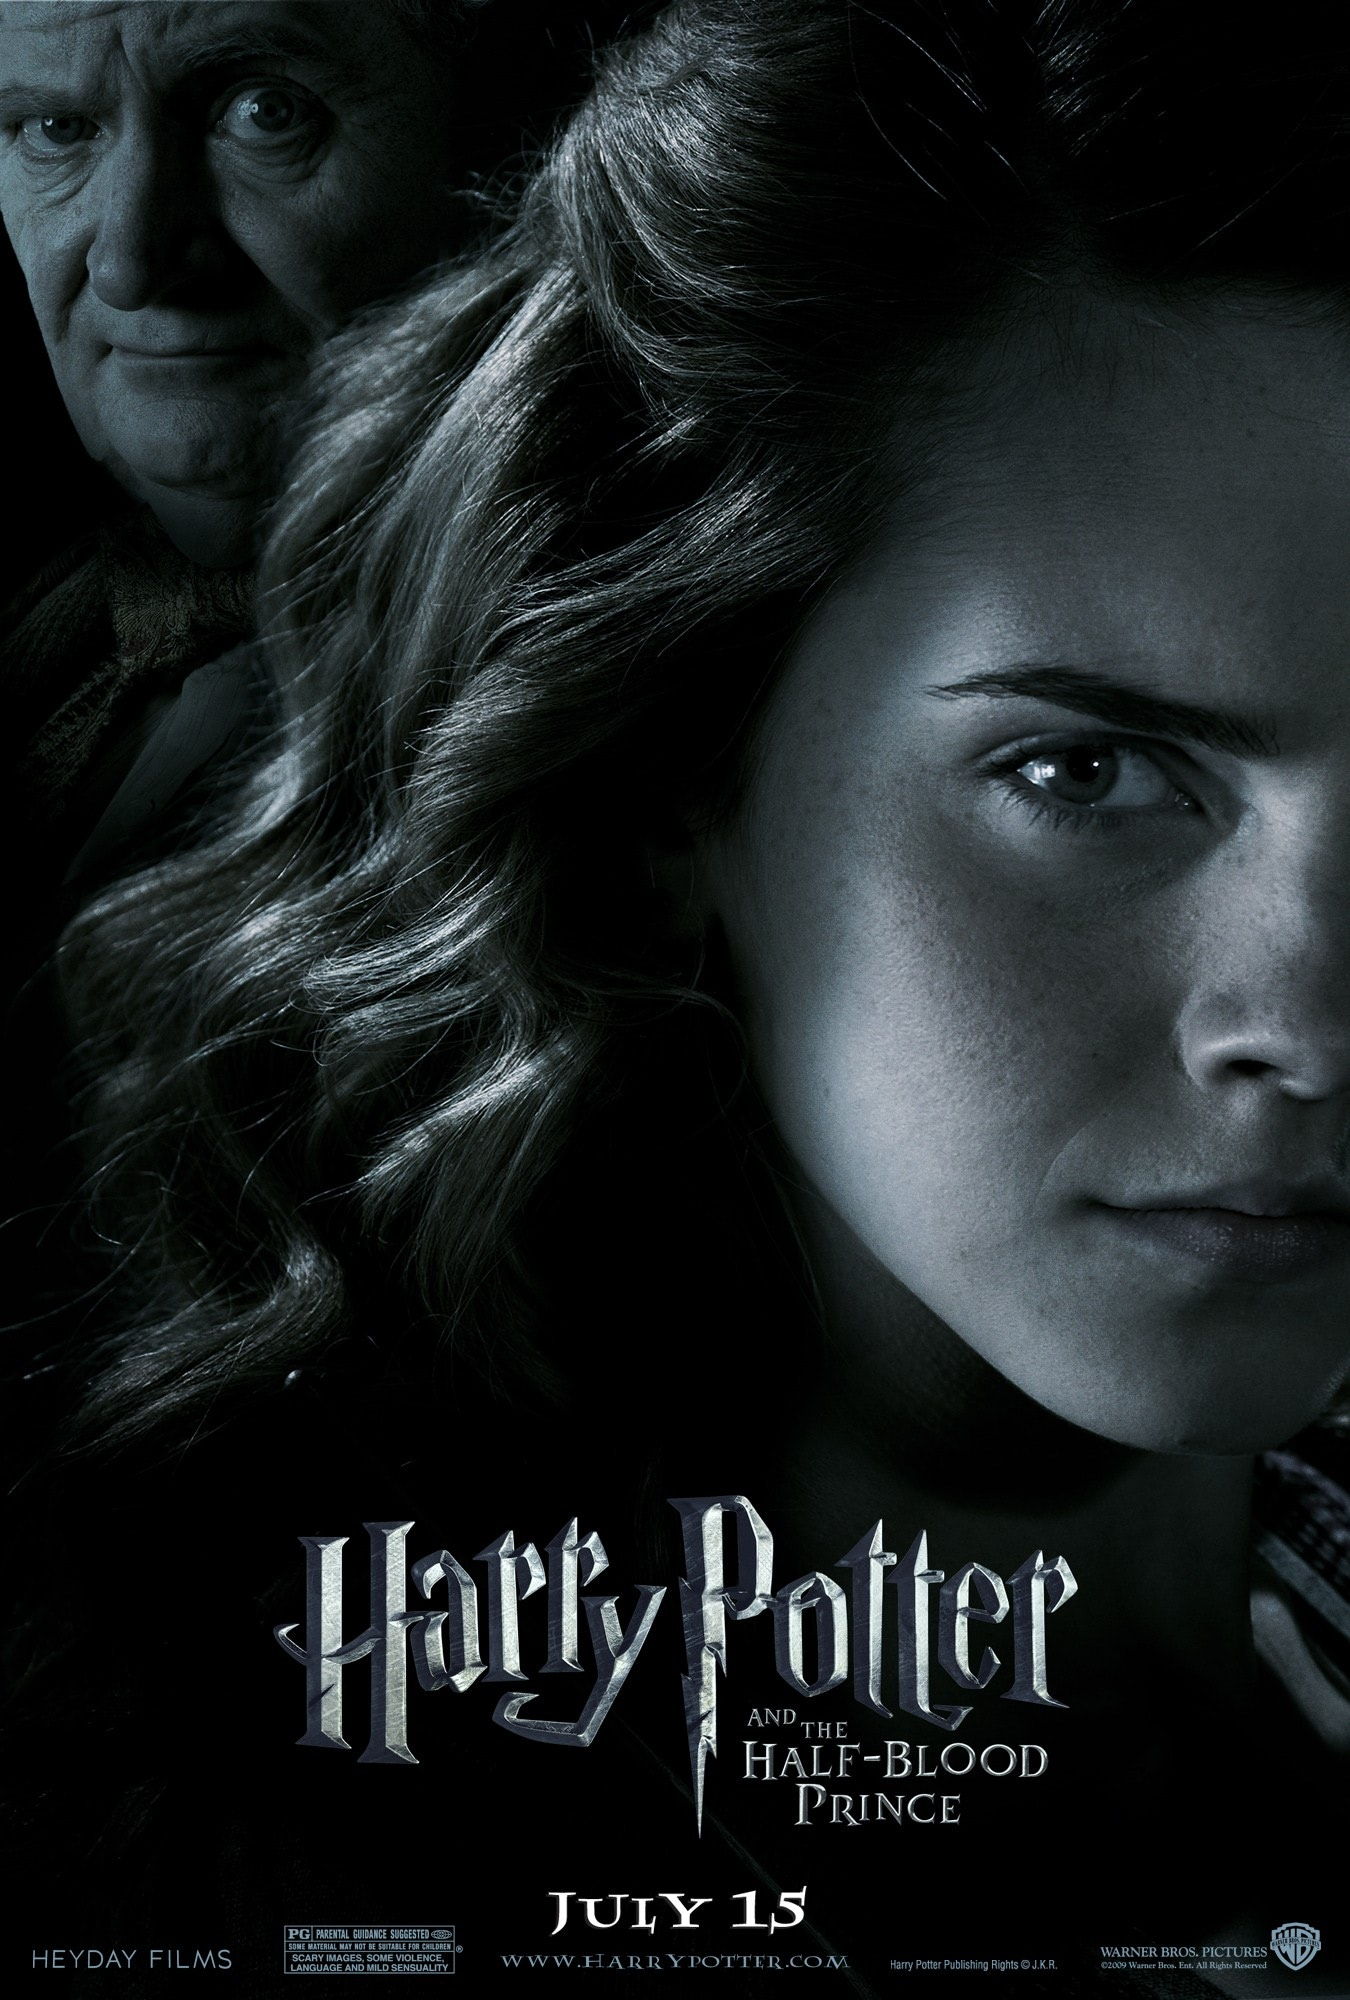 'Half-Blood Prince' Hermione poster #2